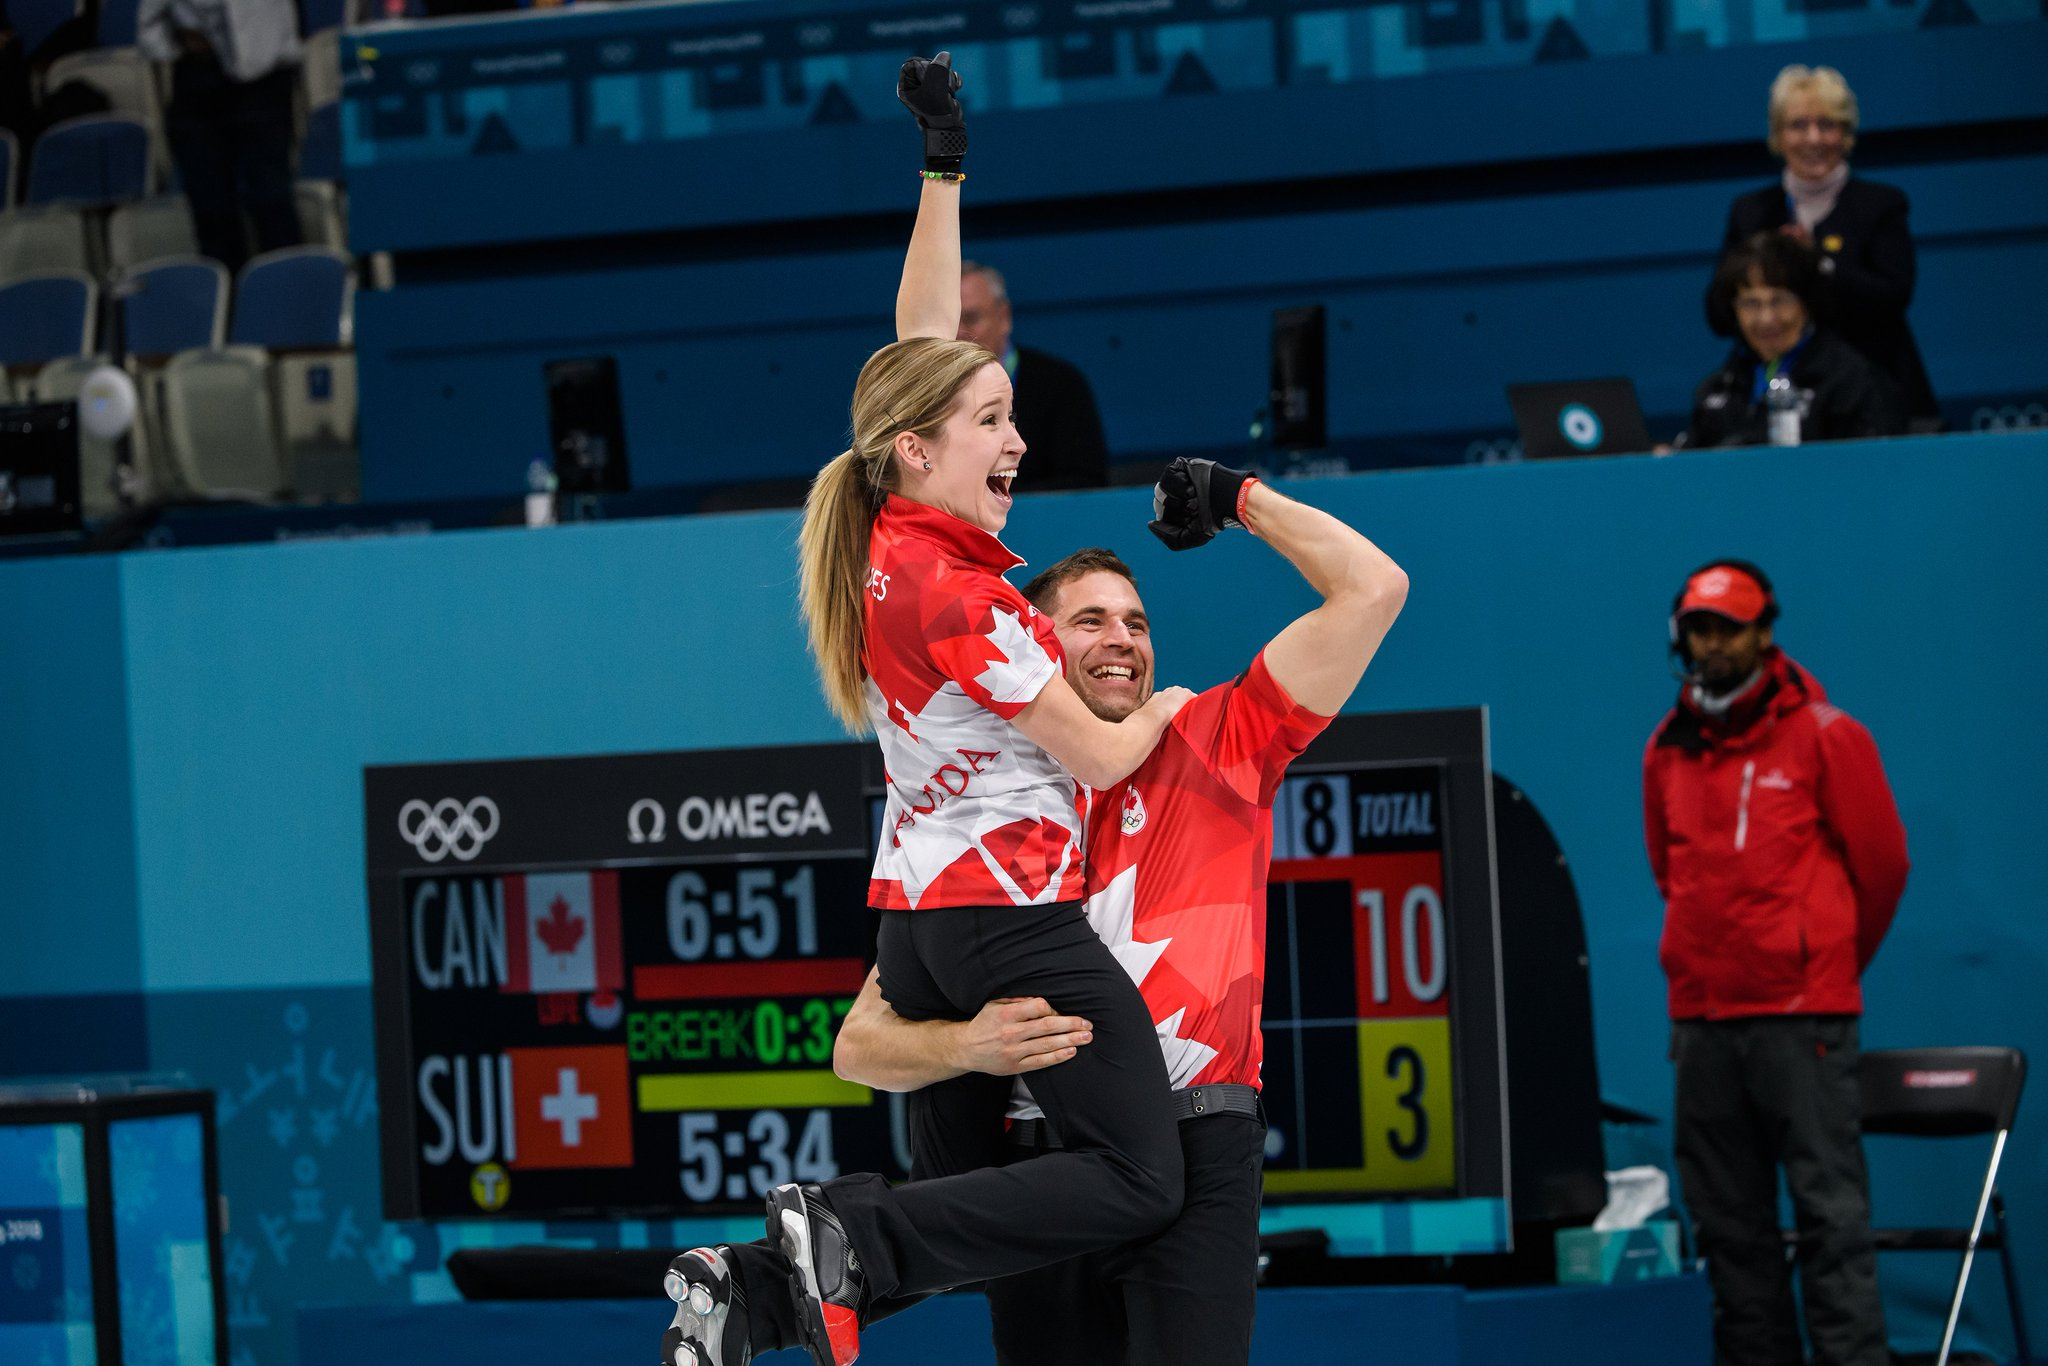 Mixed Doubles Curling in Pyeongchang: Wrap-Up and Medals